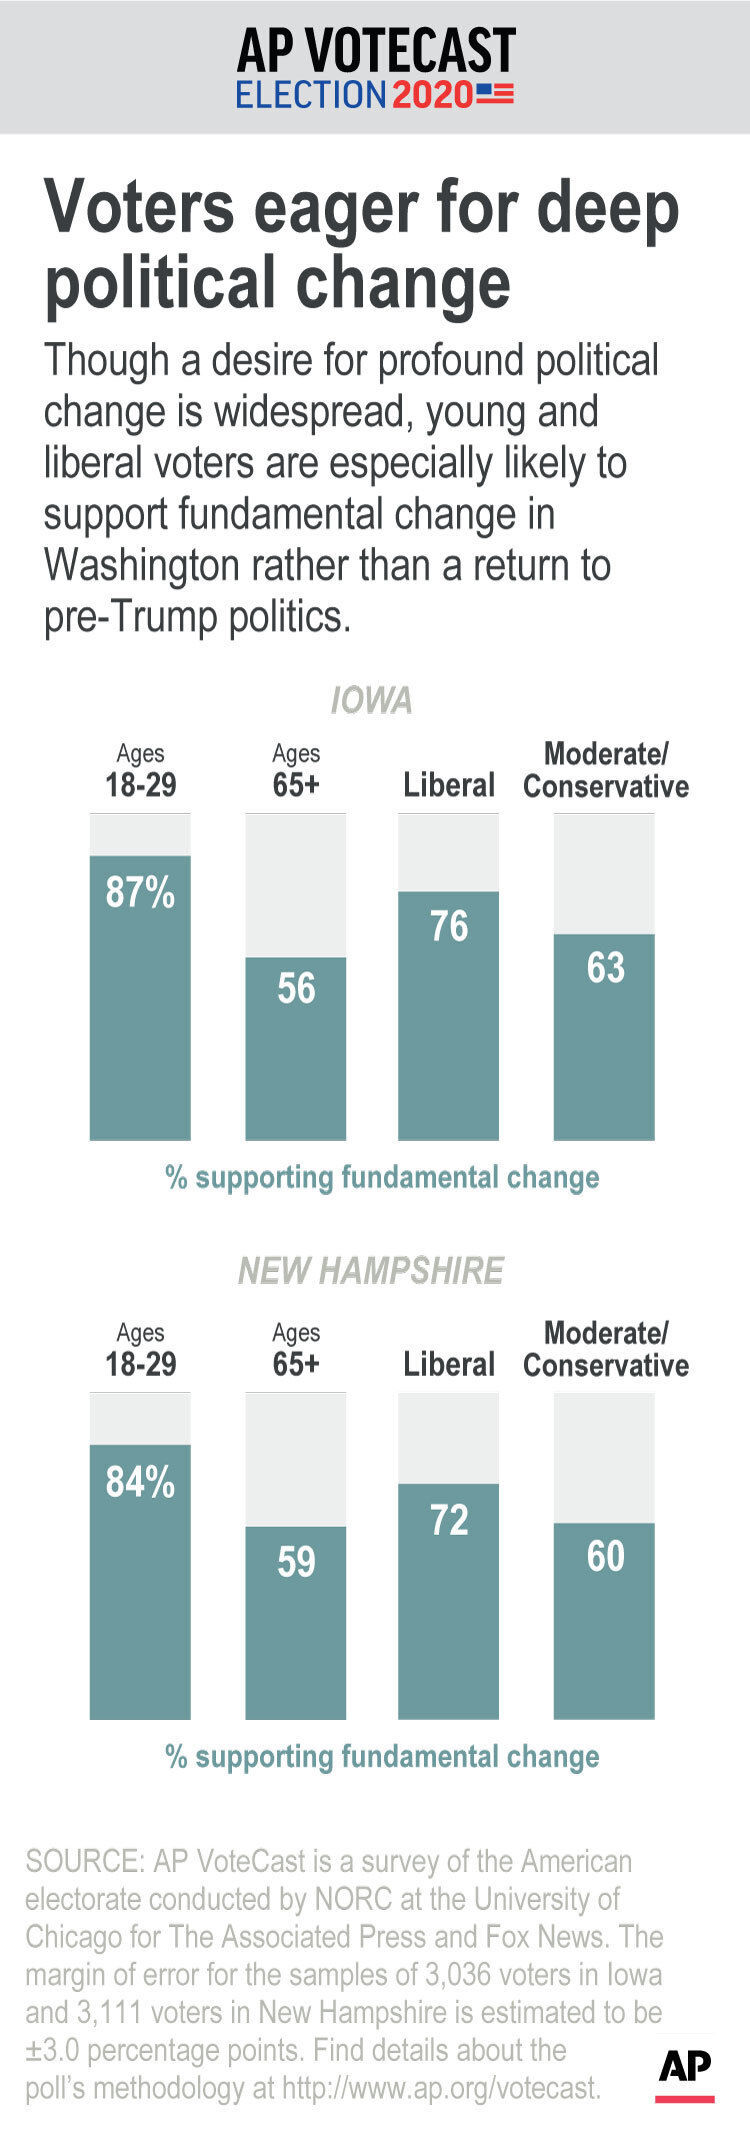 Though a desire for profound political change is widespread, young and liberal voters are especially likely to support fundamental change in Washington rather than a return to pre-Trump politics.;